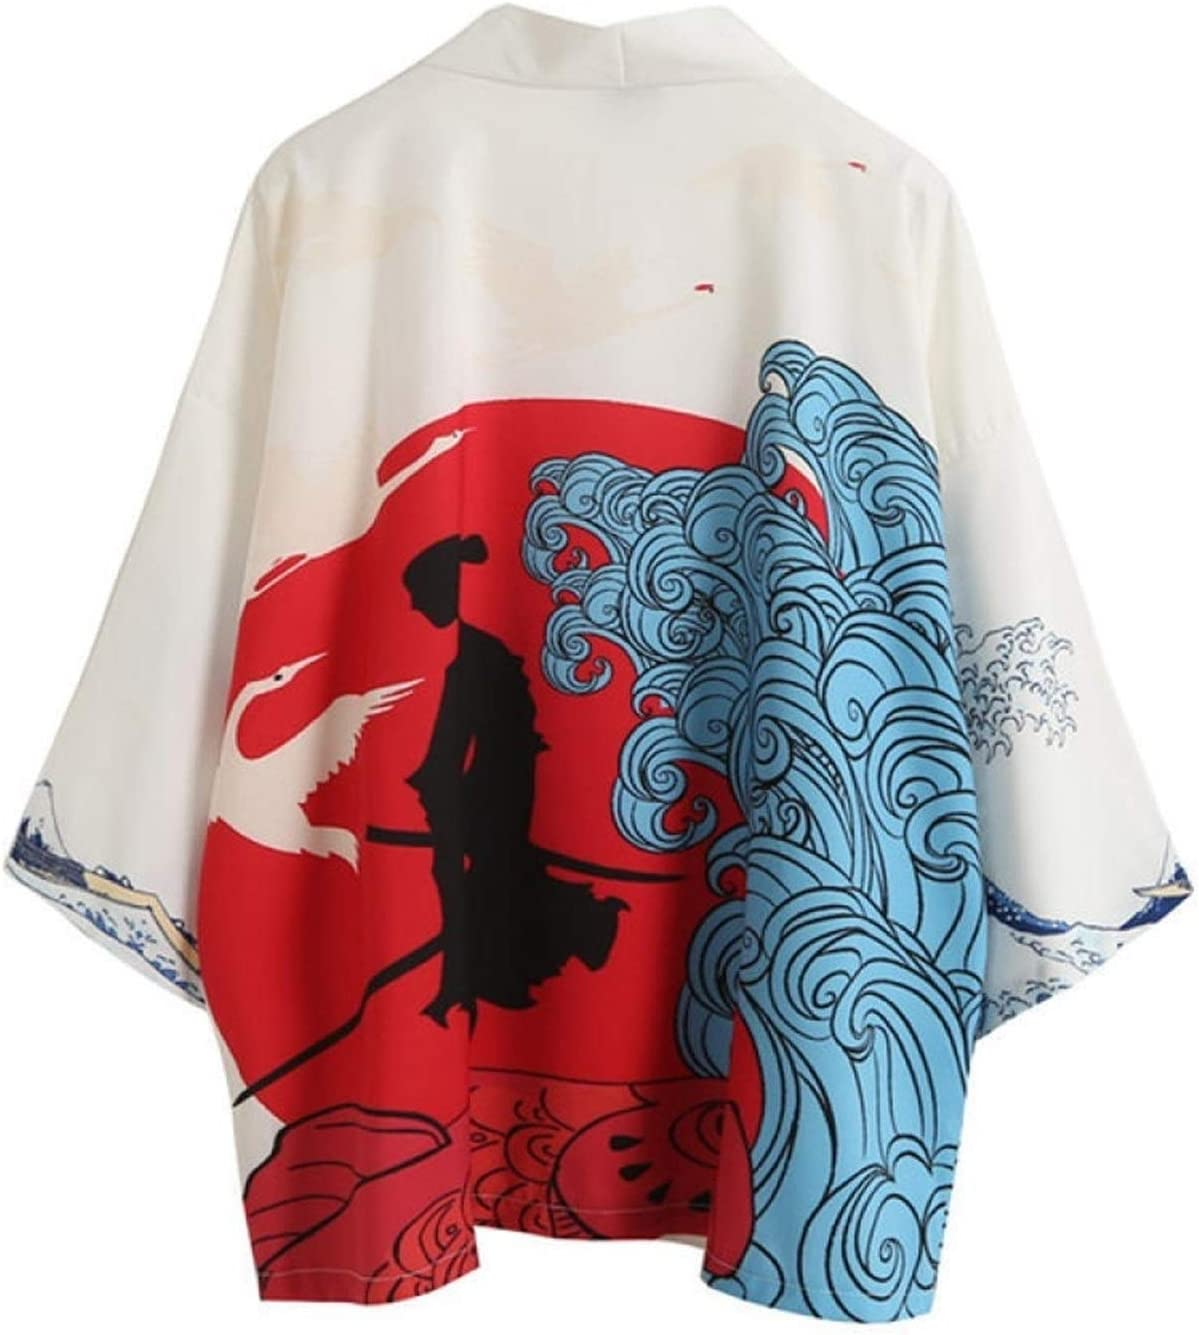 Seattle In stock Mall bayue Spring and Summer New Robe Cra Road Ukiyo-e Japanese-Style